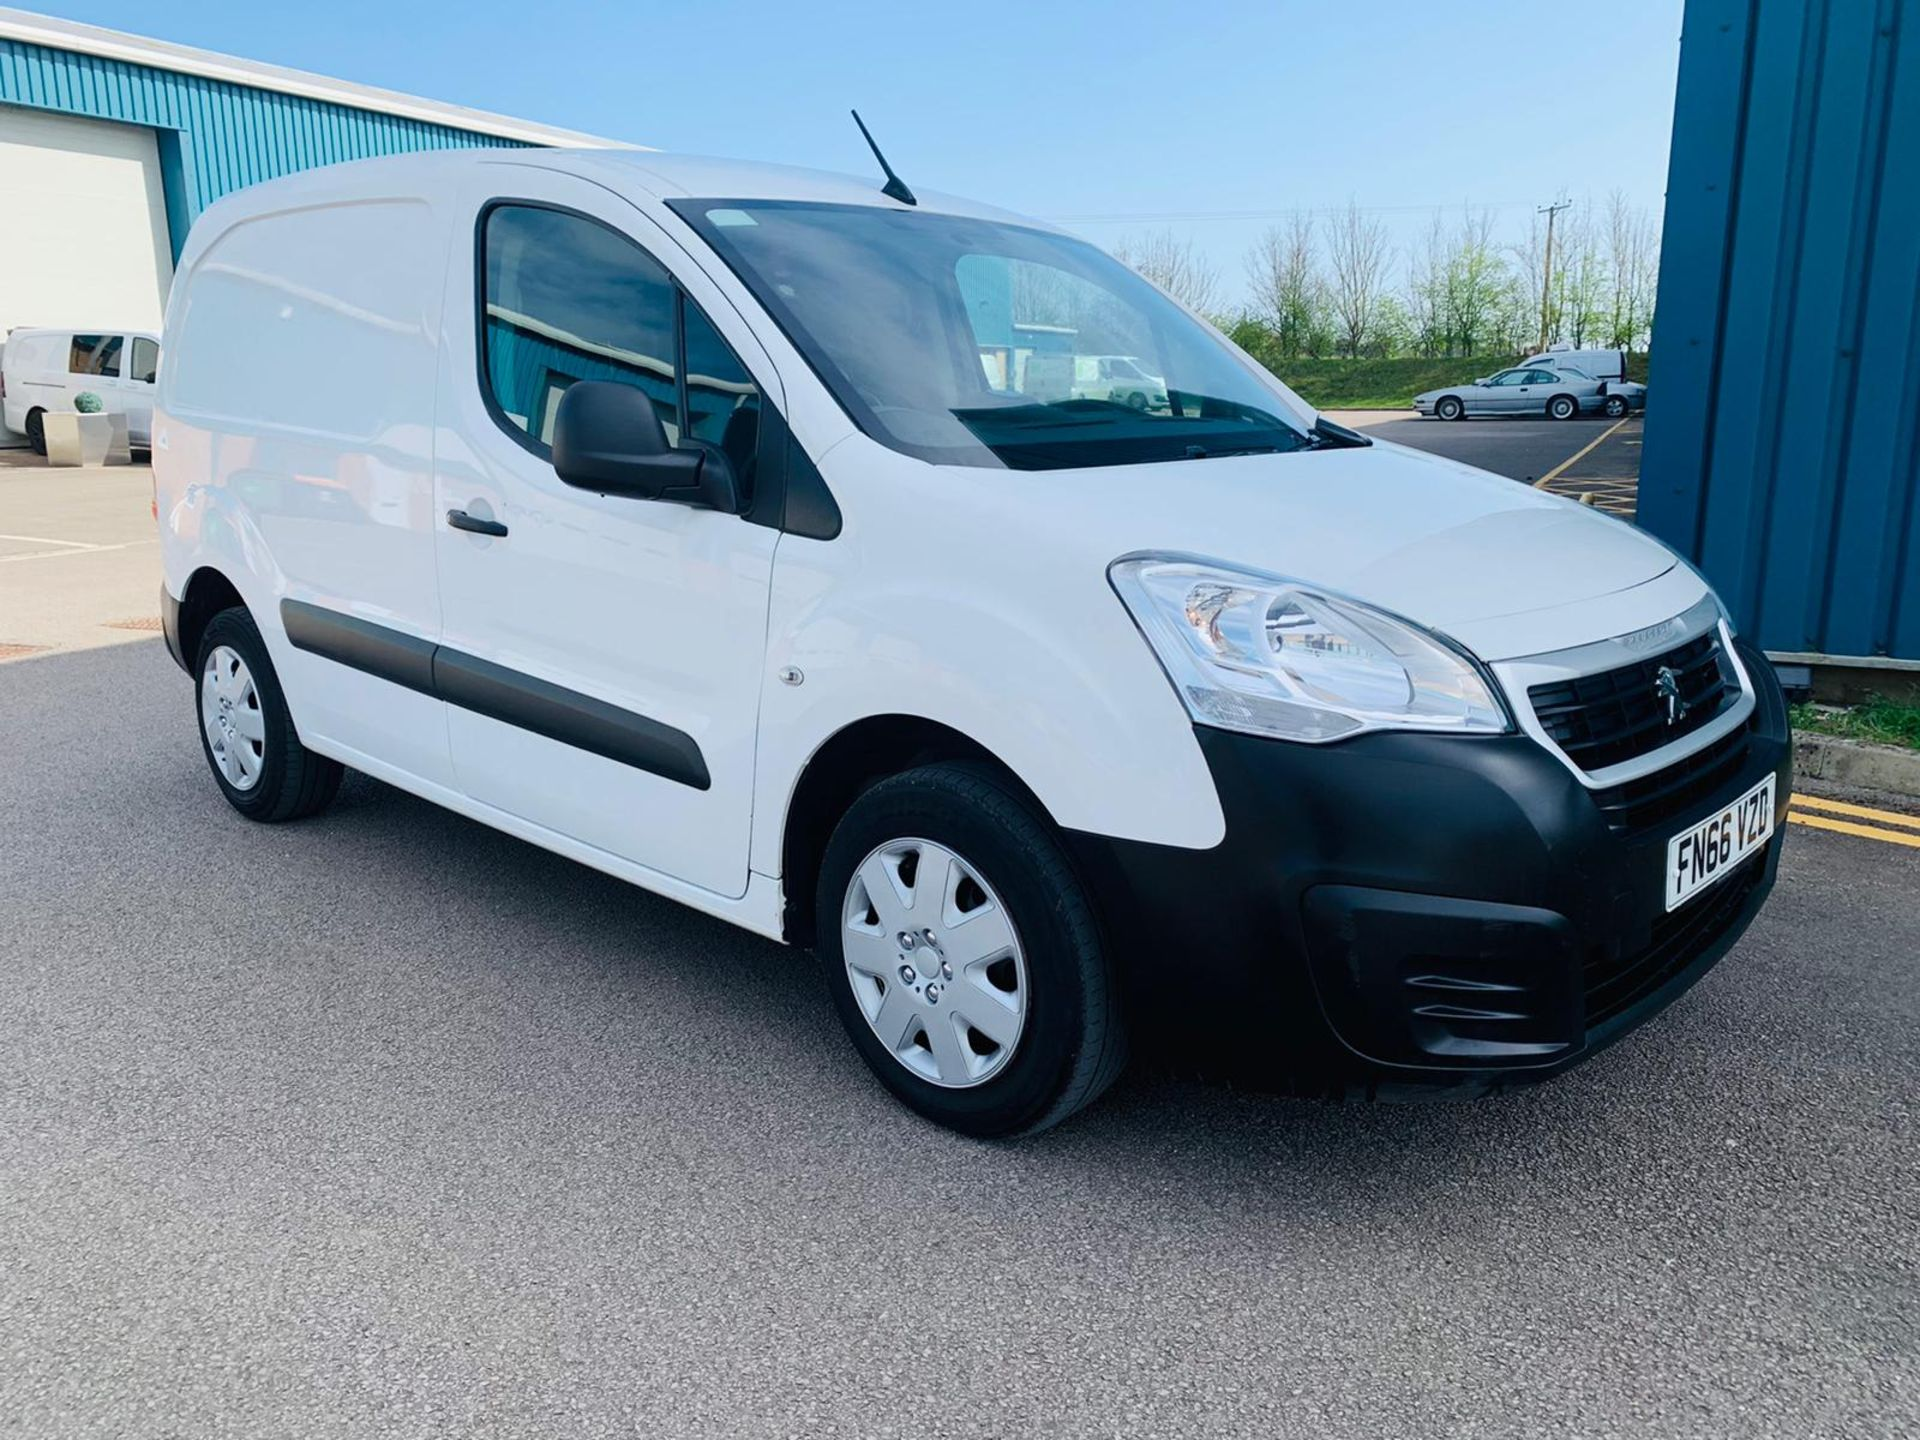 Peugeot Partner 1.6 HDI Professional 2017 Model - 1 Owner - Service Printout - Air Con - Image 2 of 23